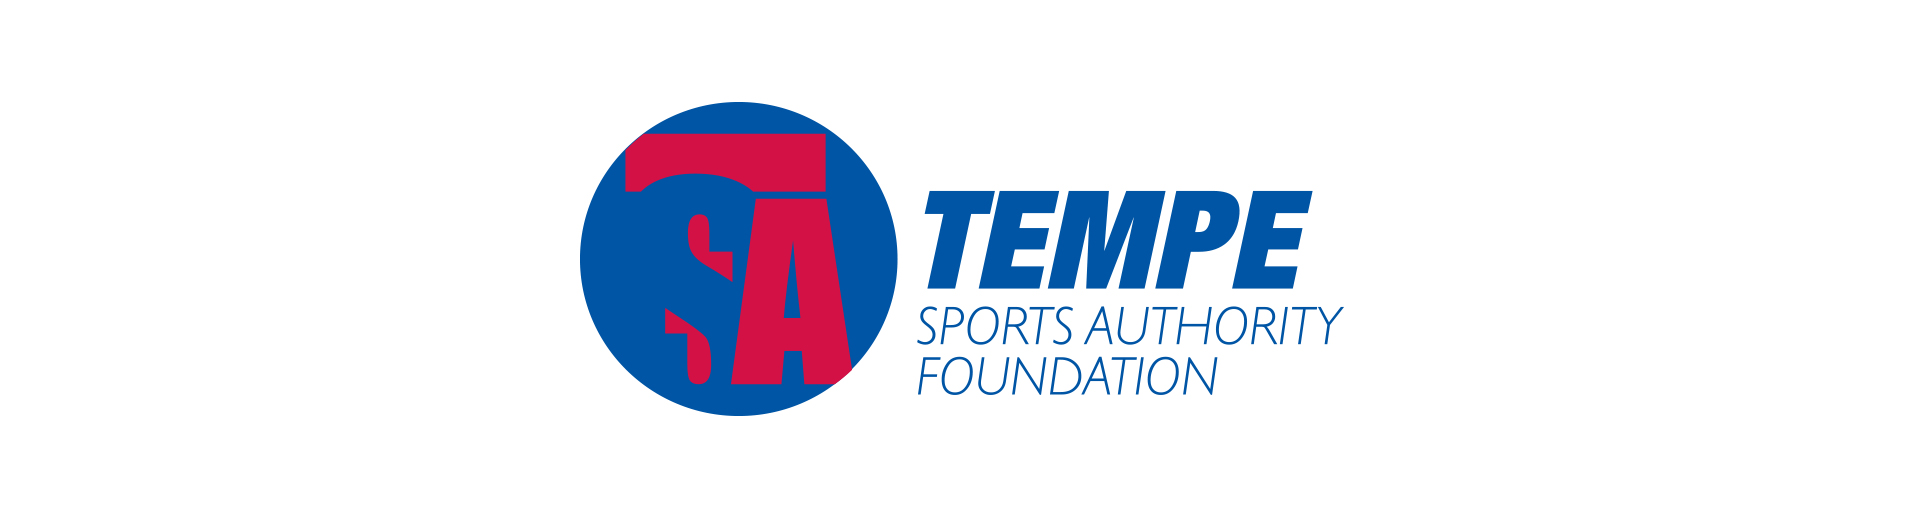 Tempe Sports Authority Foundation Logo Design